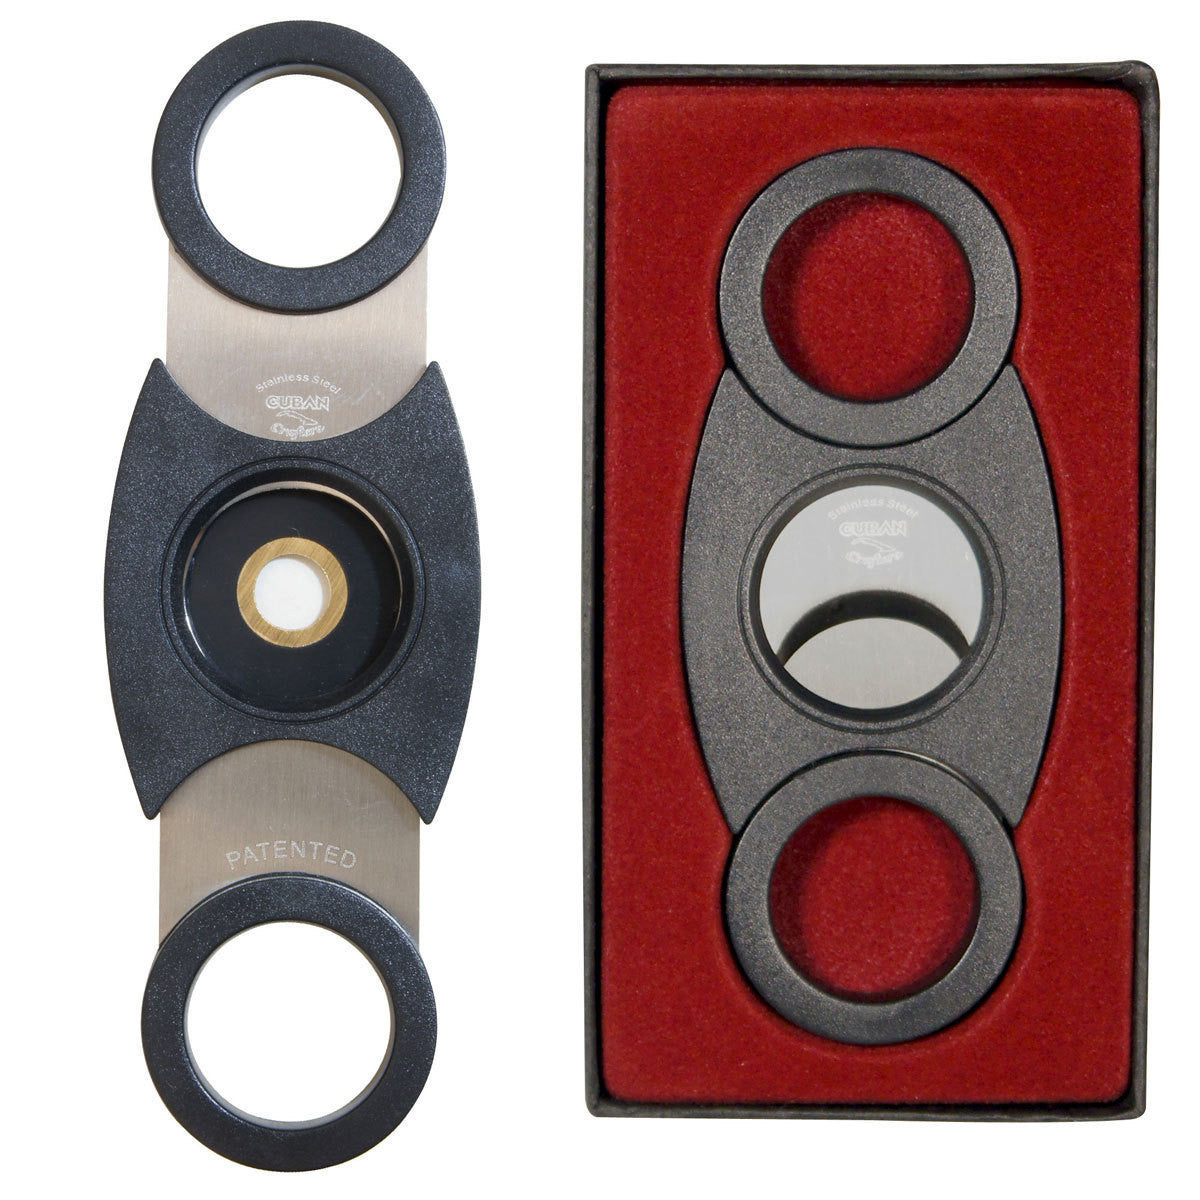 Perfect Cigar Cutters Resin - Cigar boulevard